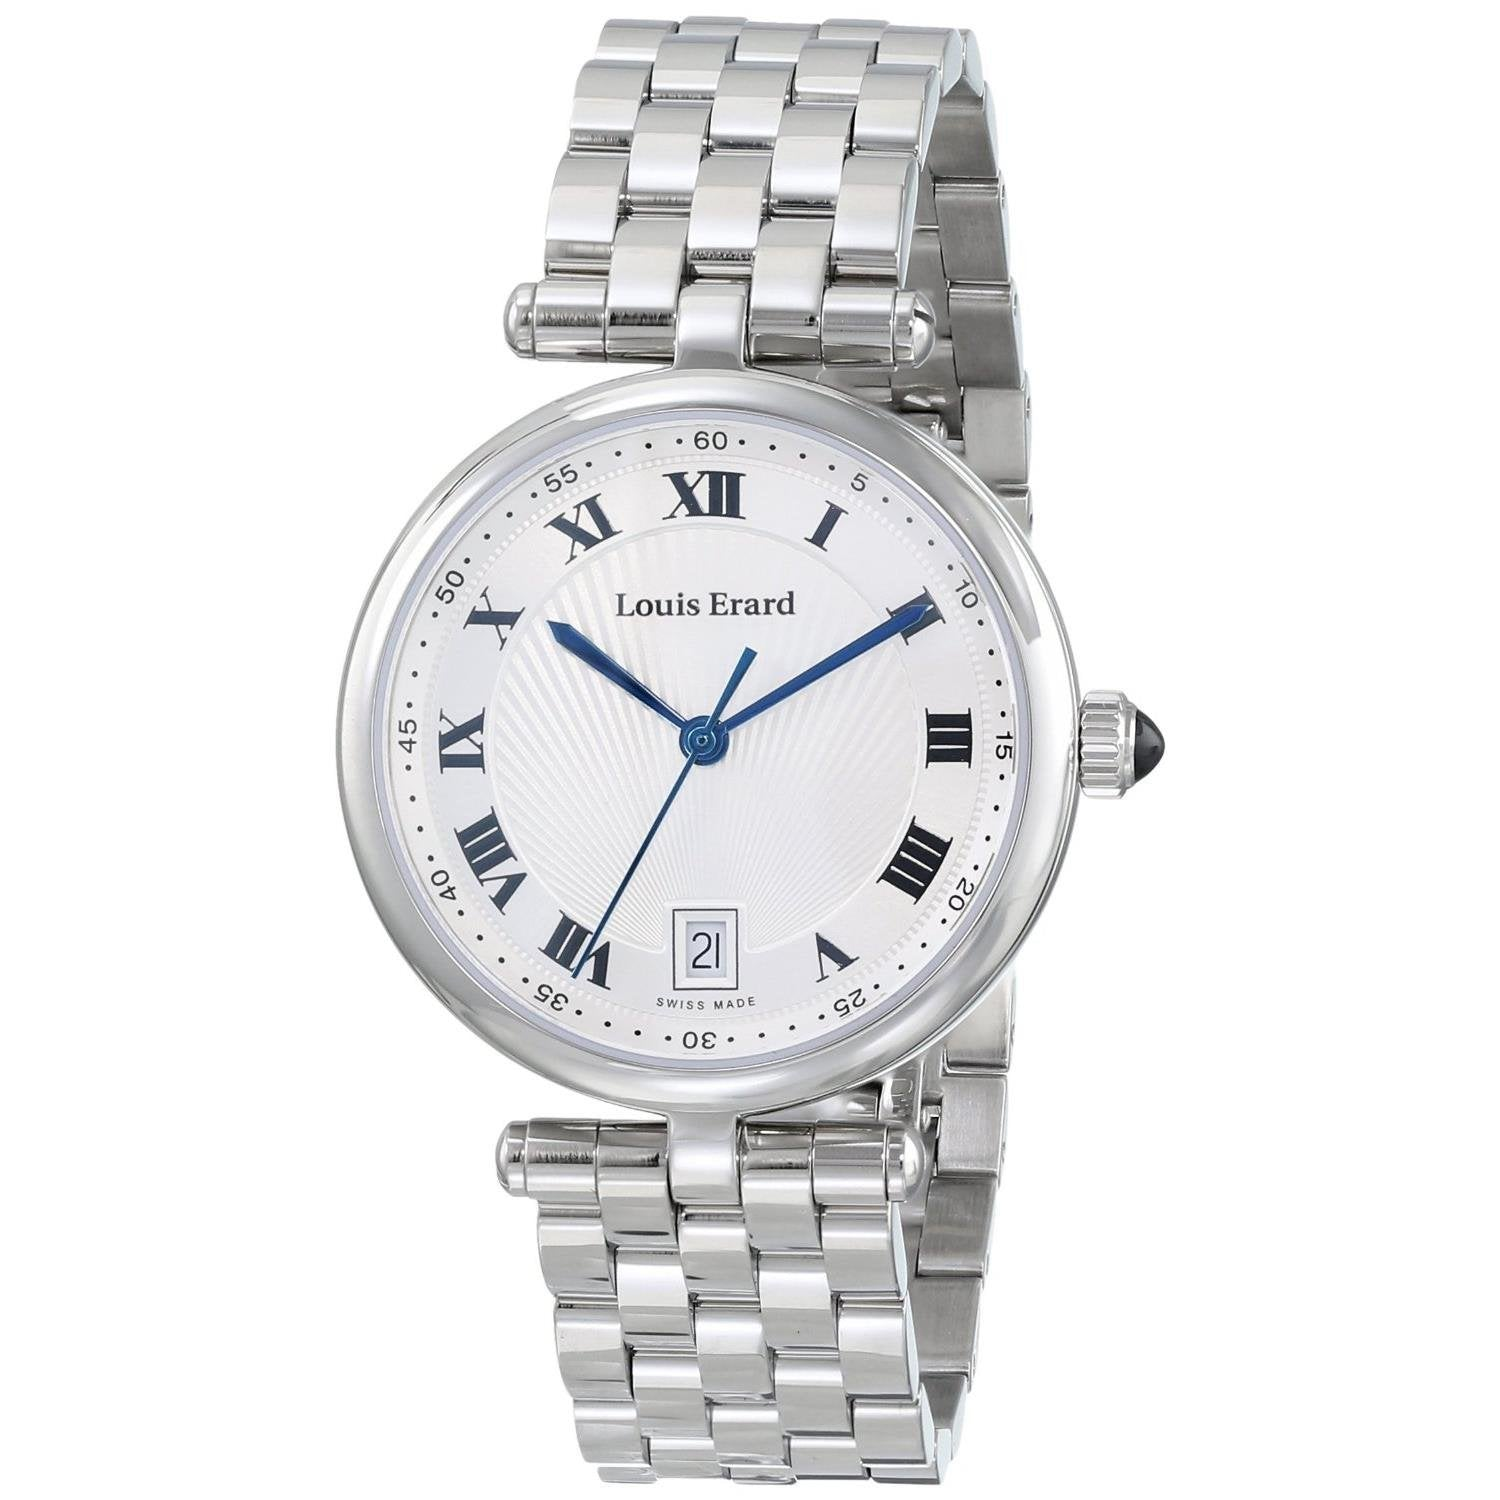 Louis Erard Romance Collection Quartz Silver Dial Women's Watch 11810AA01.BMA24